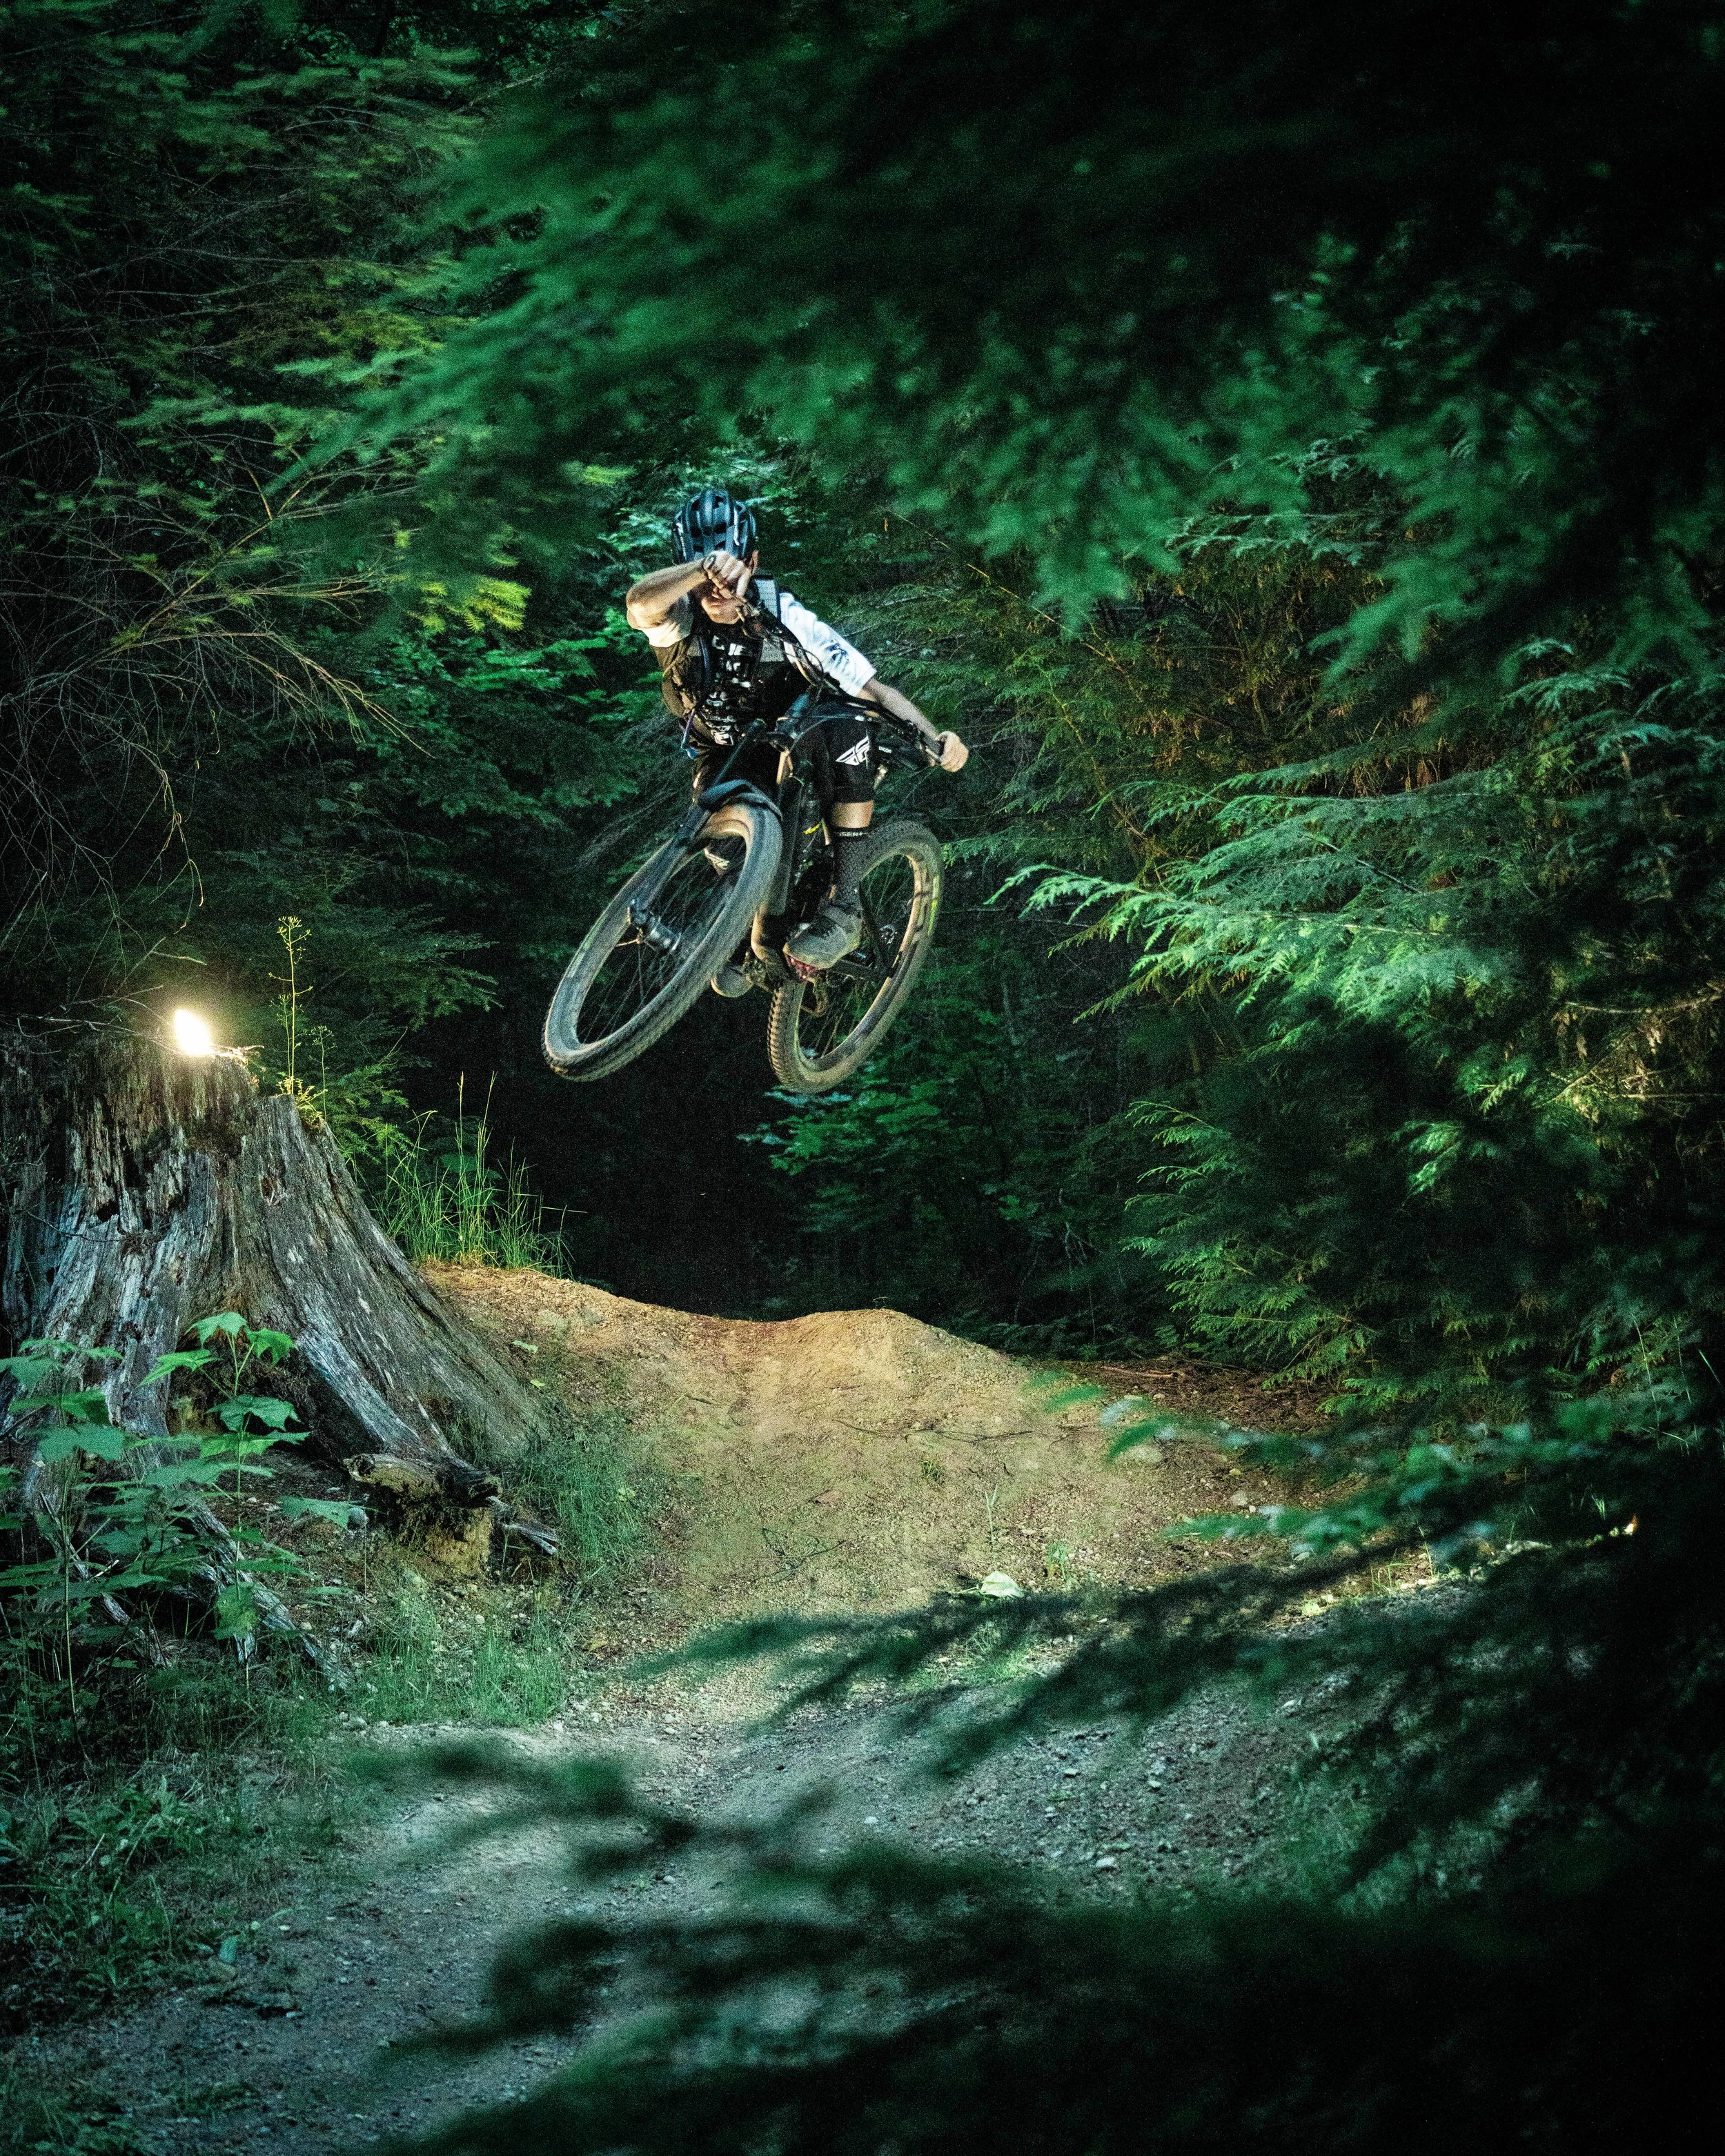 chasewhite-remymetailler-squamish-91.jpg